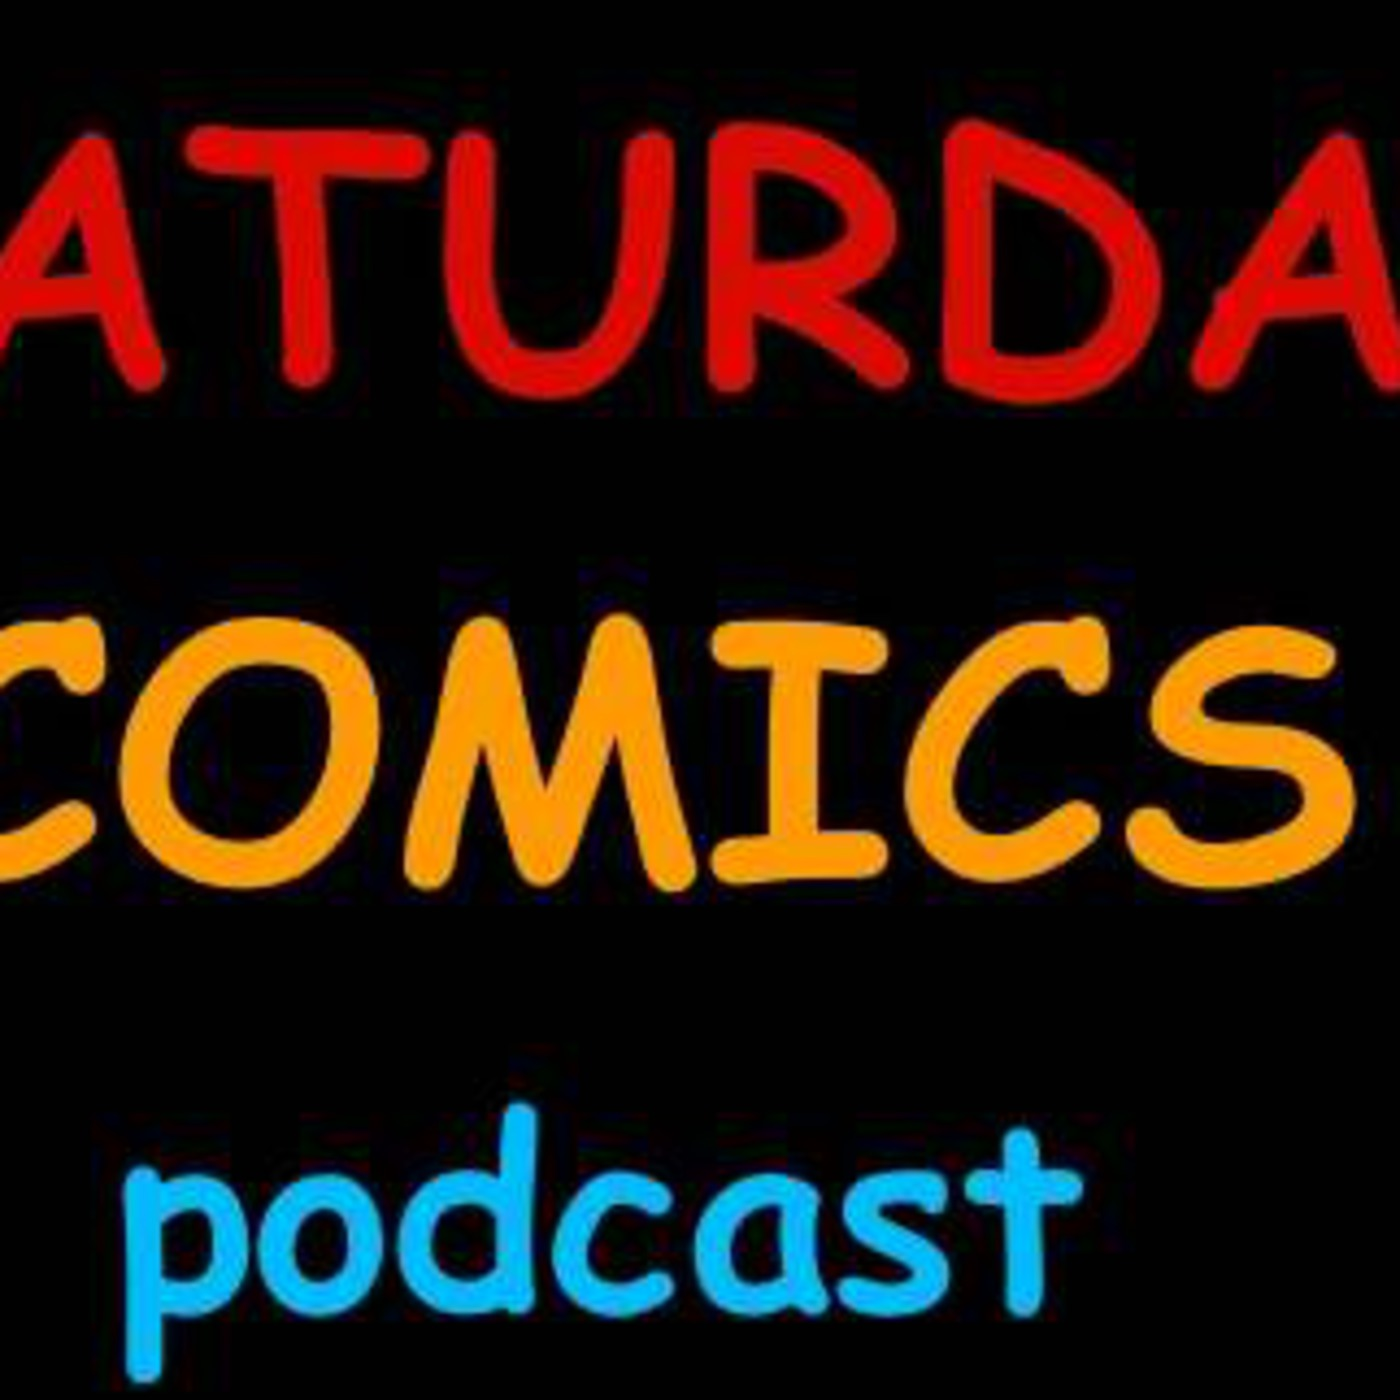 Saturday Comics Podcast